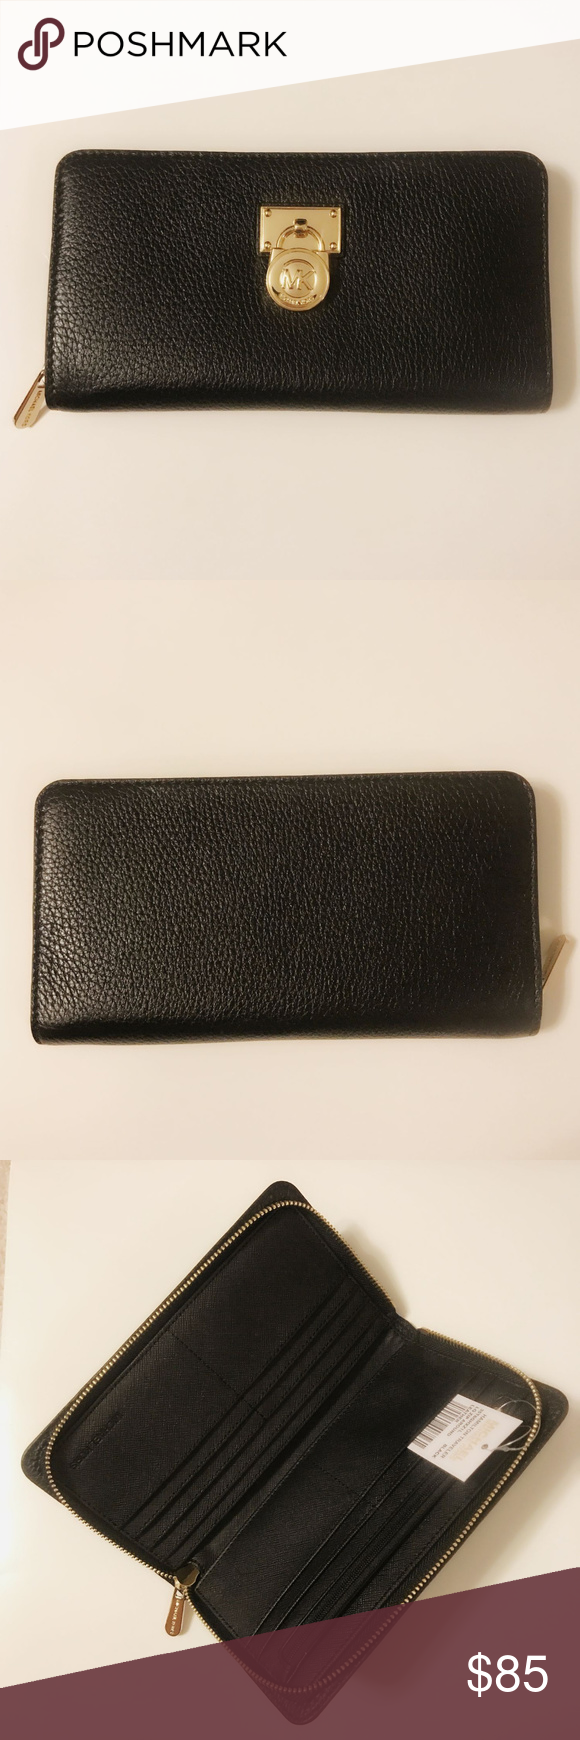 3bac5ba09ffc Michael Kors Hamilton Traveler Zip Around Wallet Michael Kors Hamilton  Traveler Large Wallet Leather Acorn   Black Michael Kors 35T6GHXZ1L New  With Tag 100% ...